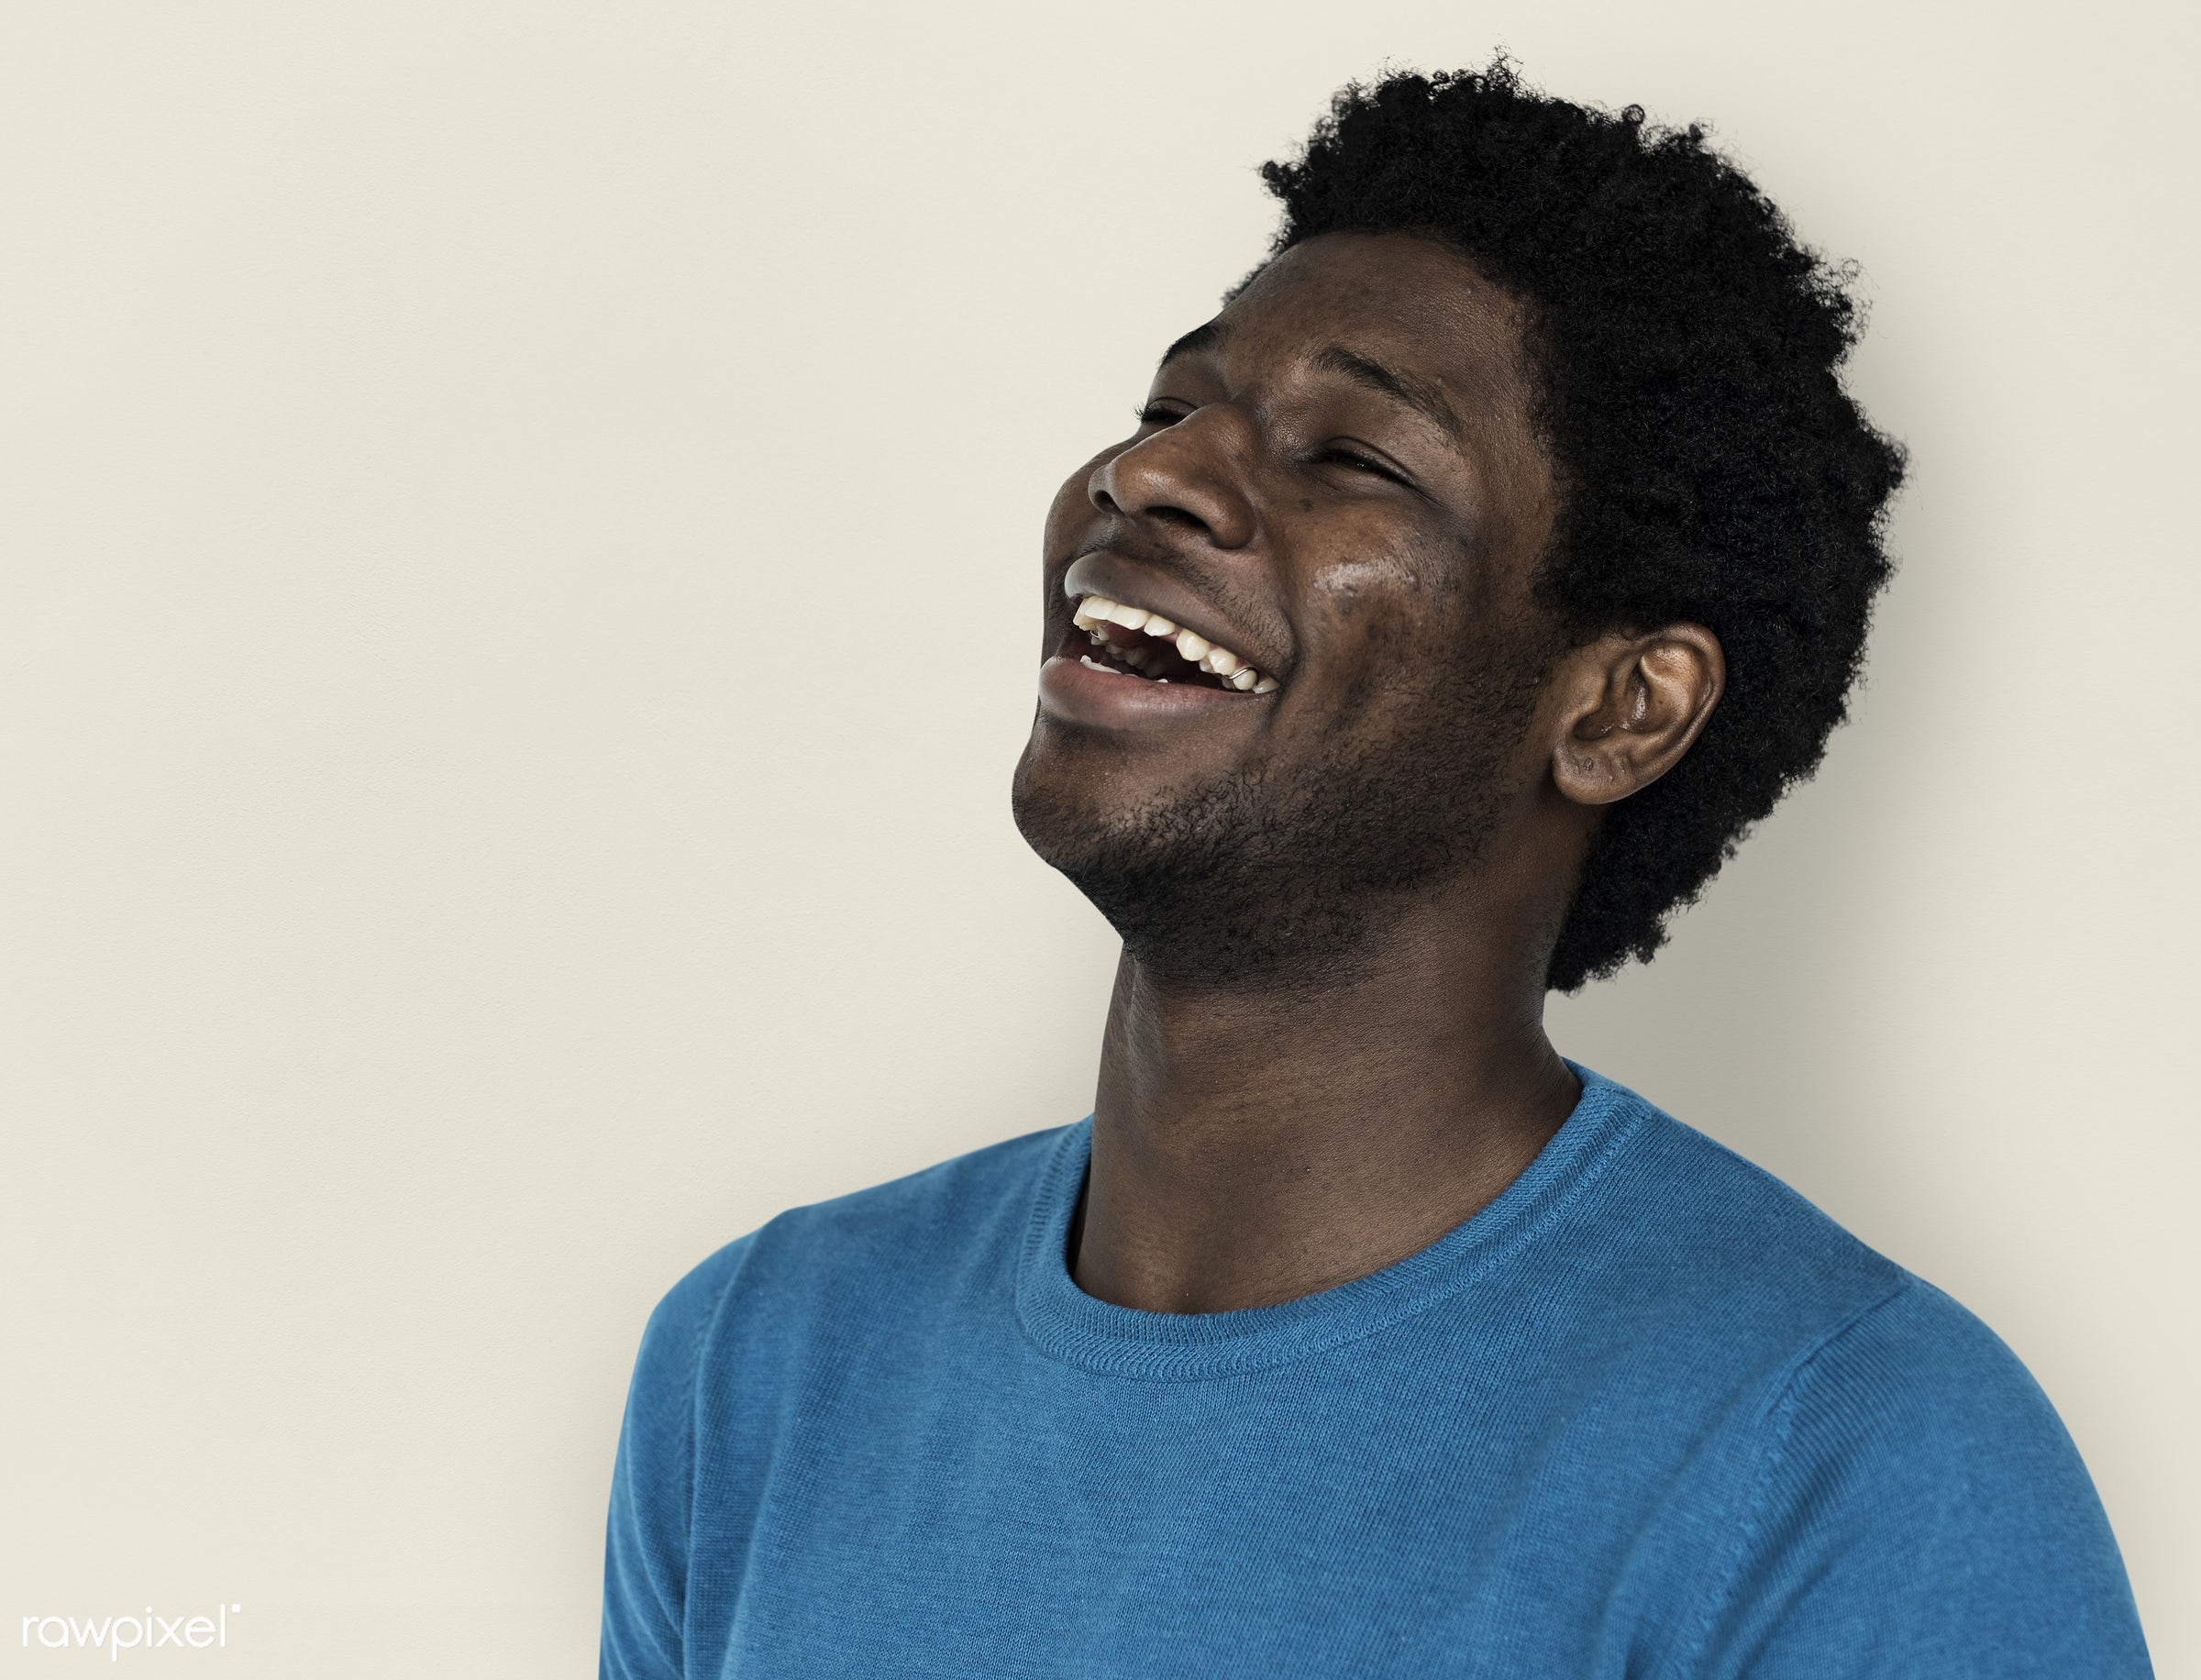 studio, expression, person, model, freedom, african ethnicity, relax, optimistic, people, laughing, lifestyle, casual,...